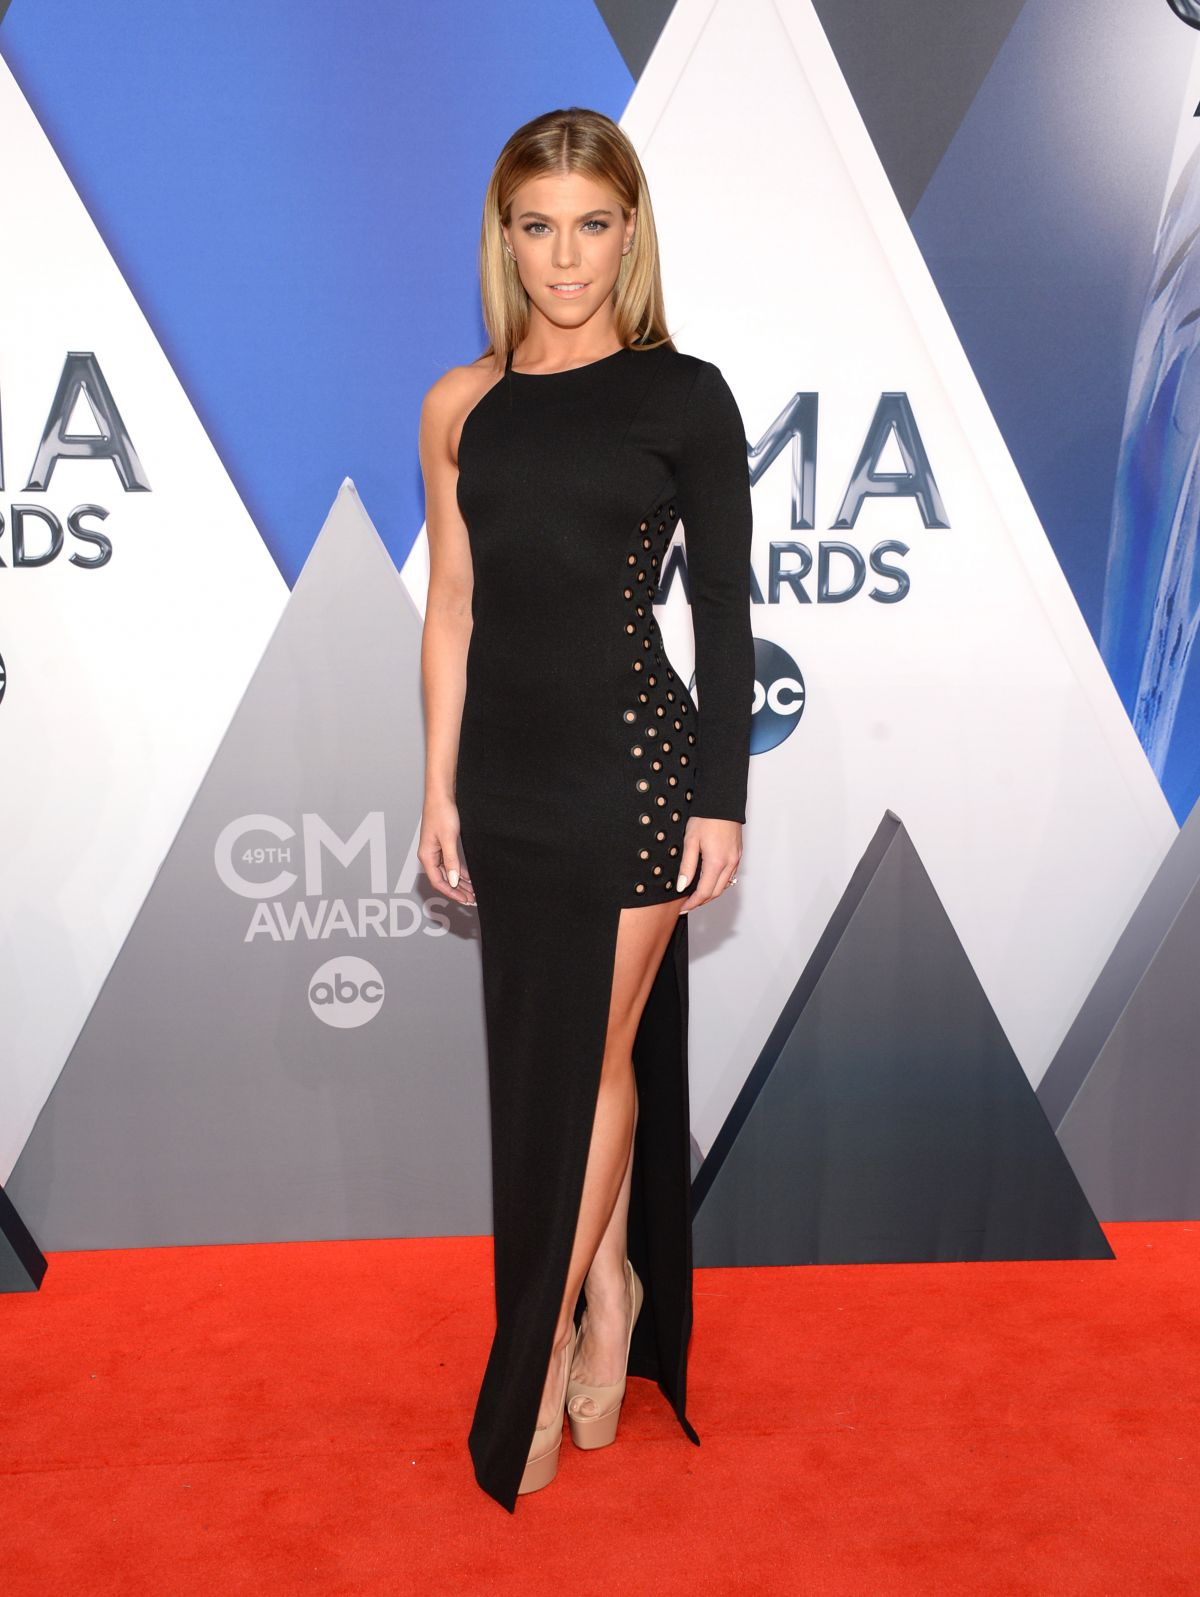 KIMBERLY PERRY at 49th Annual CMA Awards in Nashville 11/04/2015